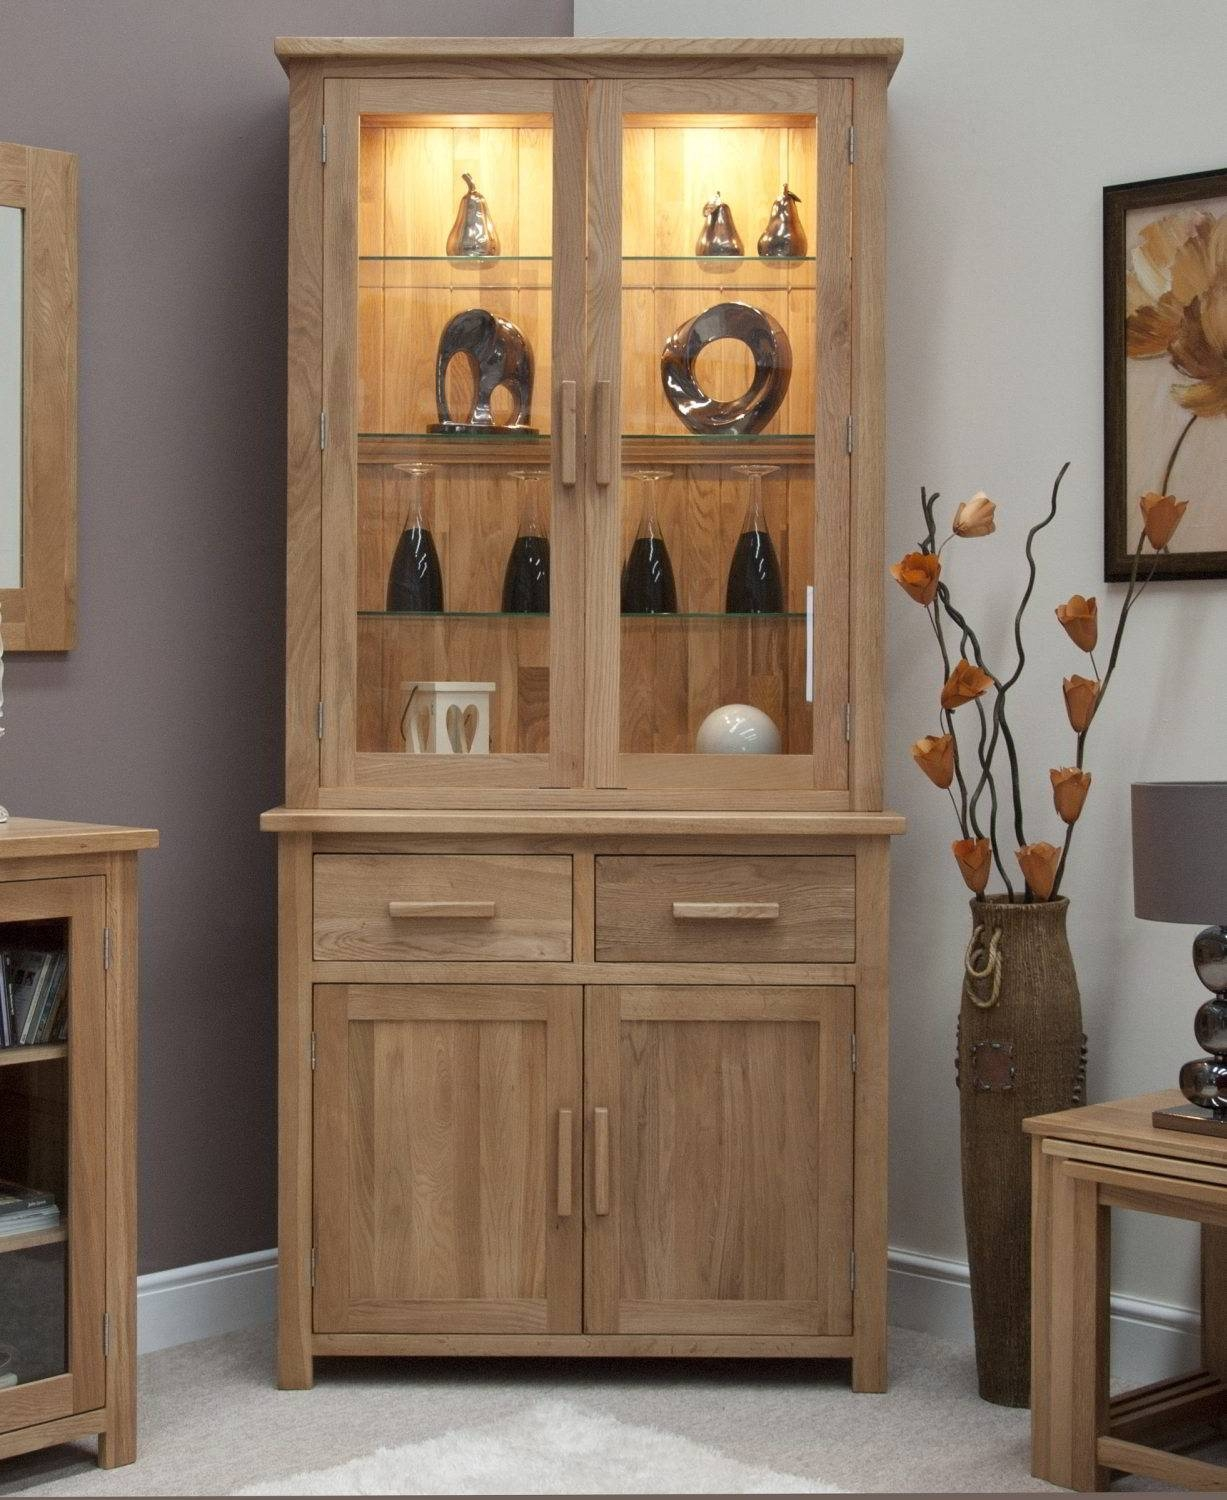 Oak Dining Room Display Cabinets » Dining Room Decor Ideas And Regarding Current Display Sideboards (#8 of 15)